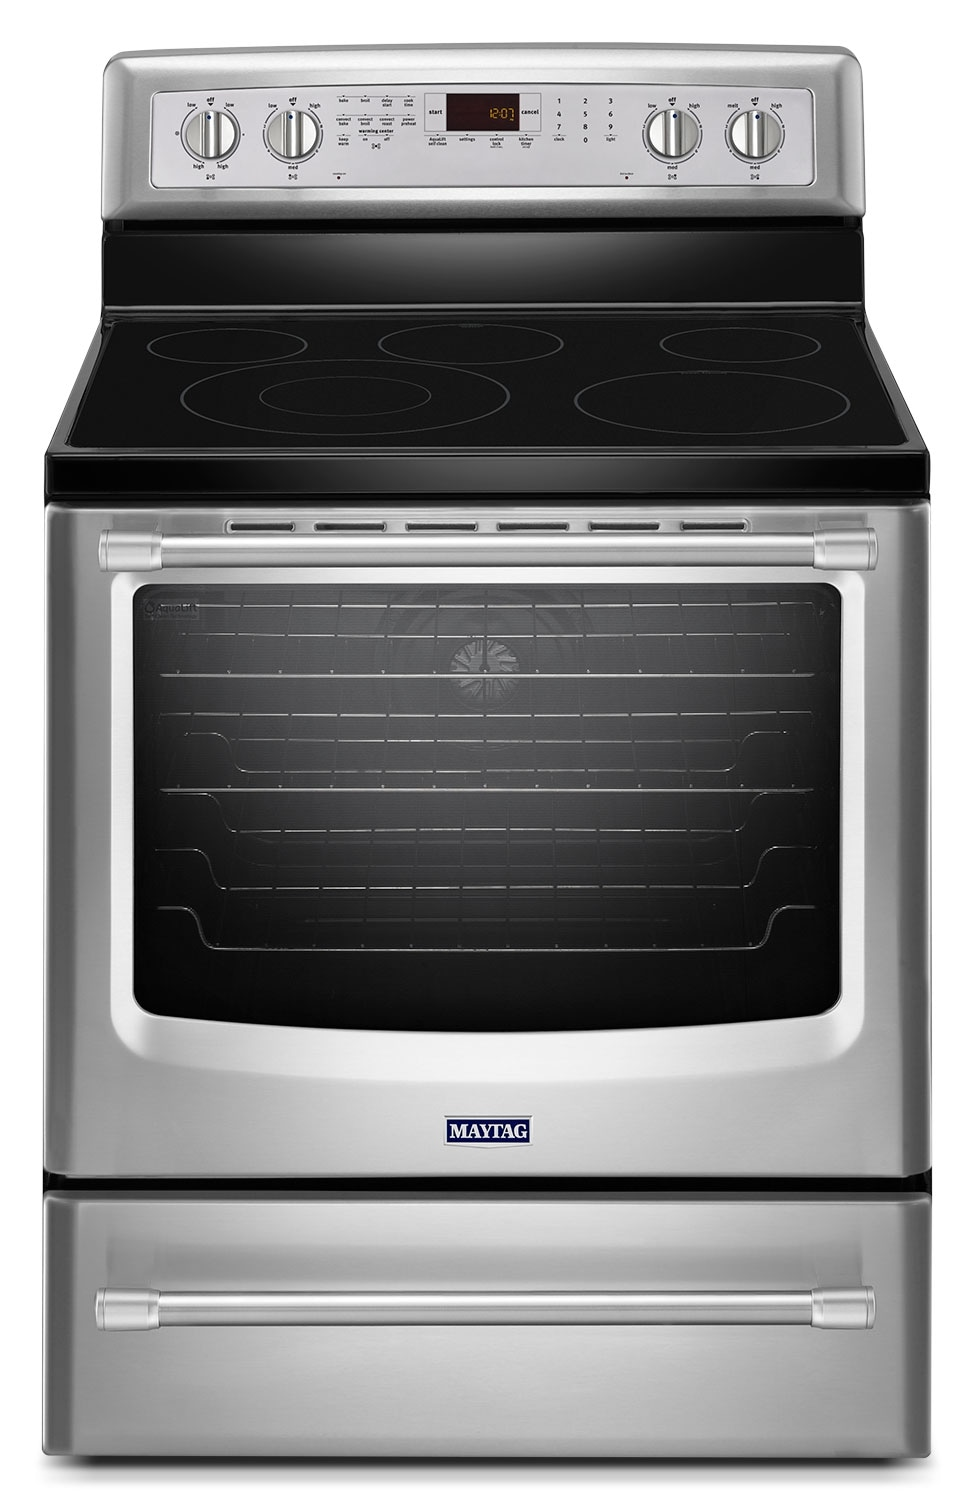 Maytag Stainless Steel Freestanding Electric Convection Range (6.2 Cu. Ft.) - YMER8800DS